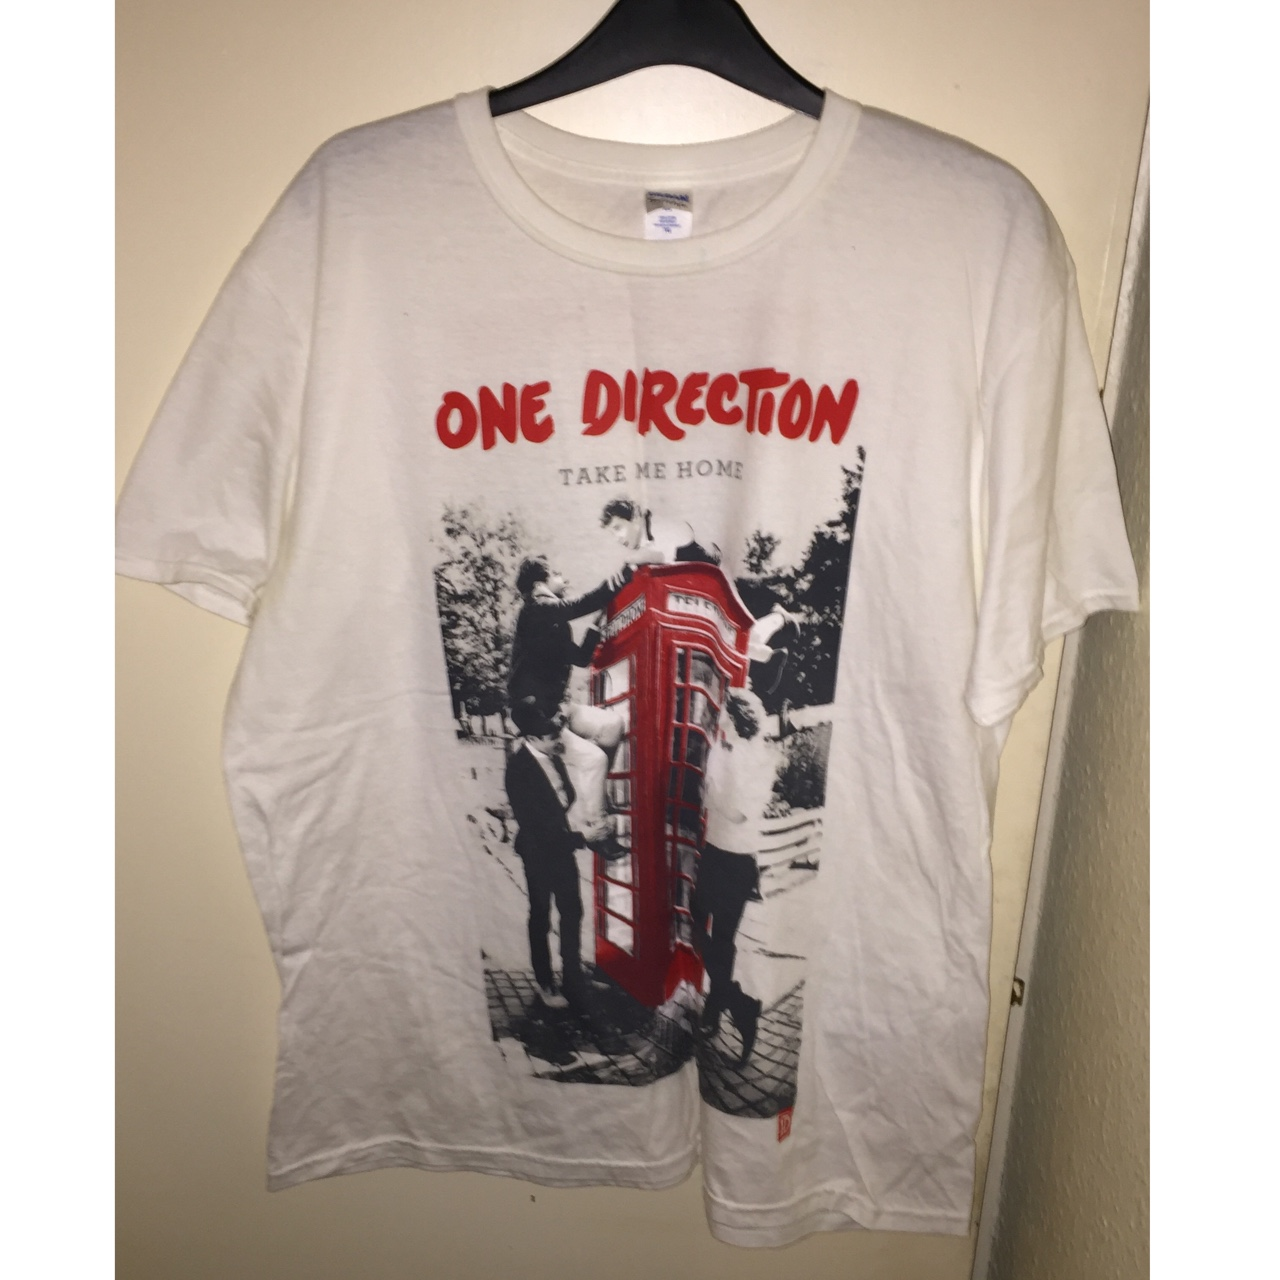 One Direction Take Me Home Tour 2013 T Shirt Depop